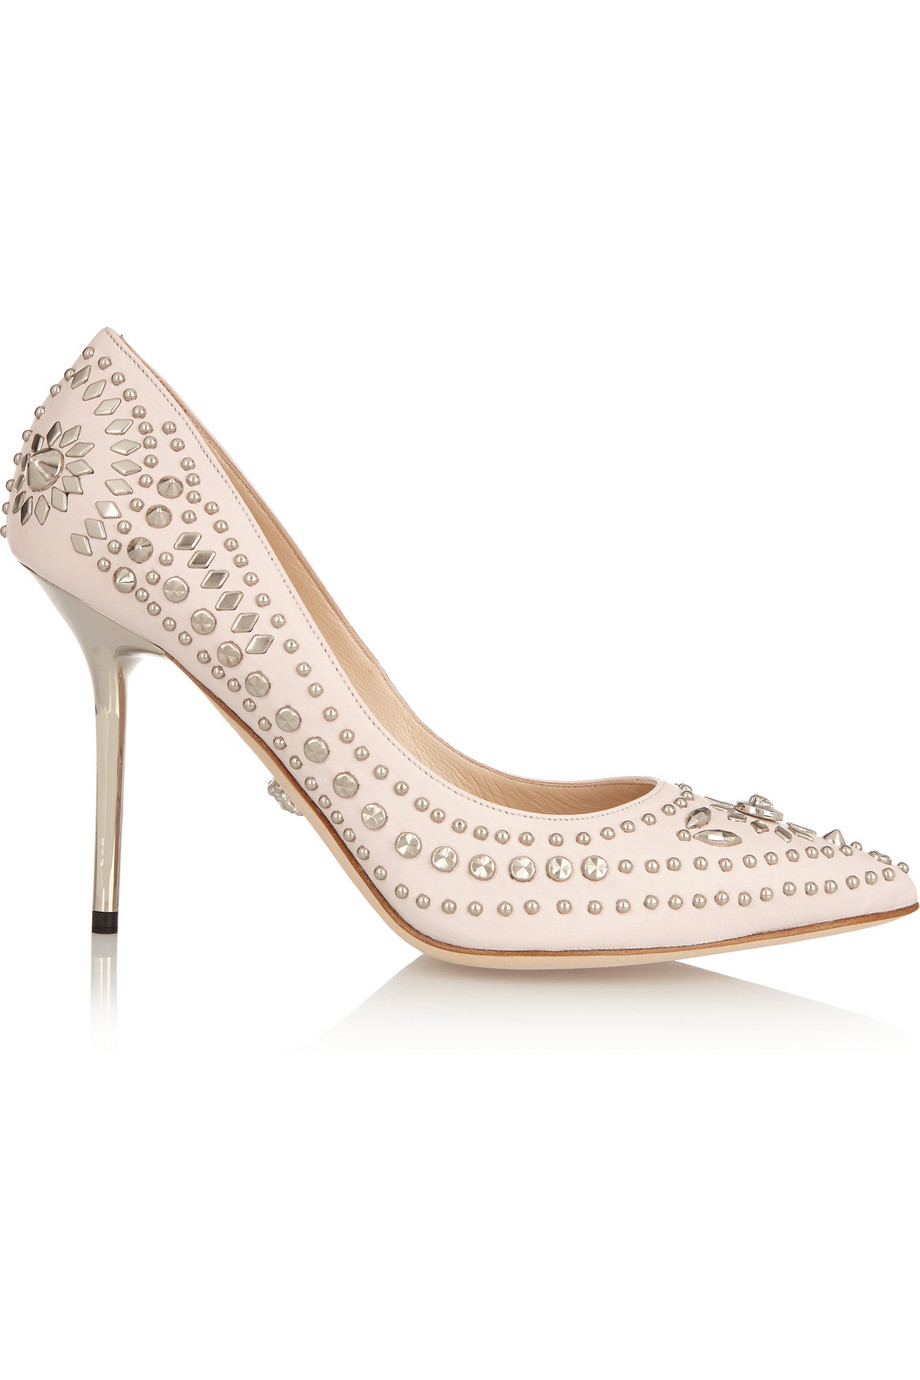 Versace Studded Leather Pumps $780